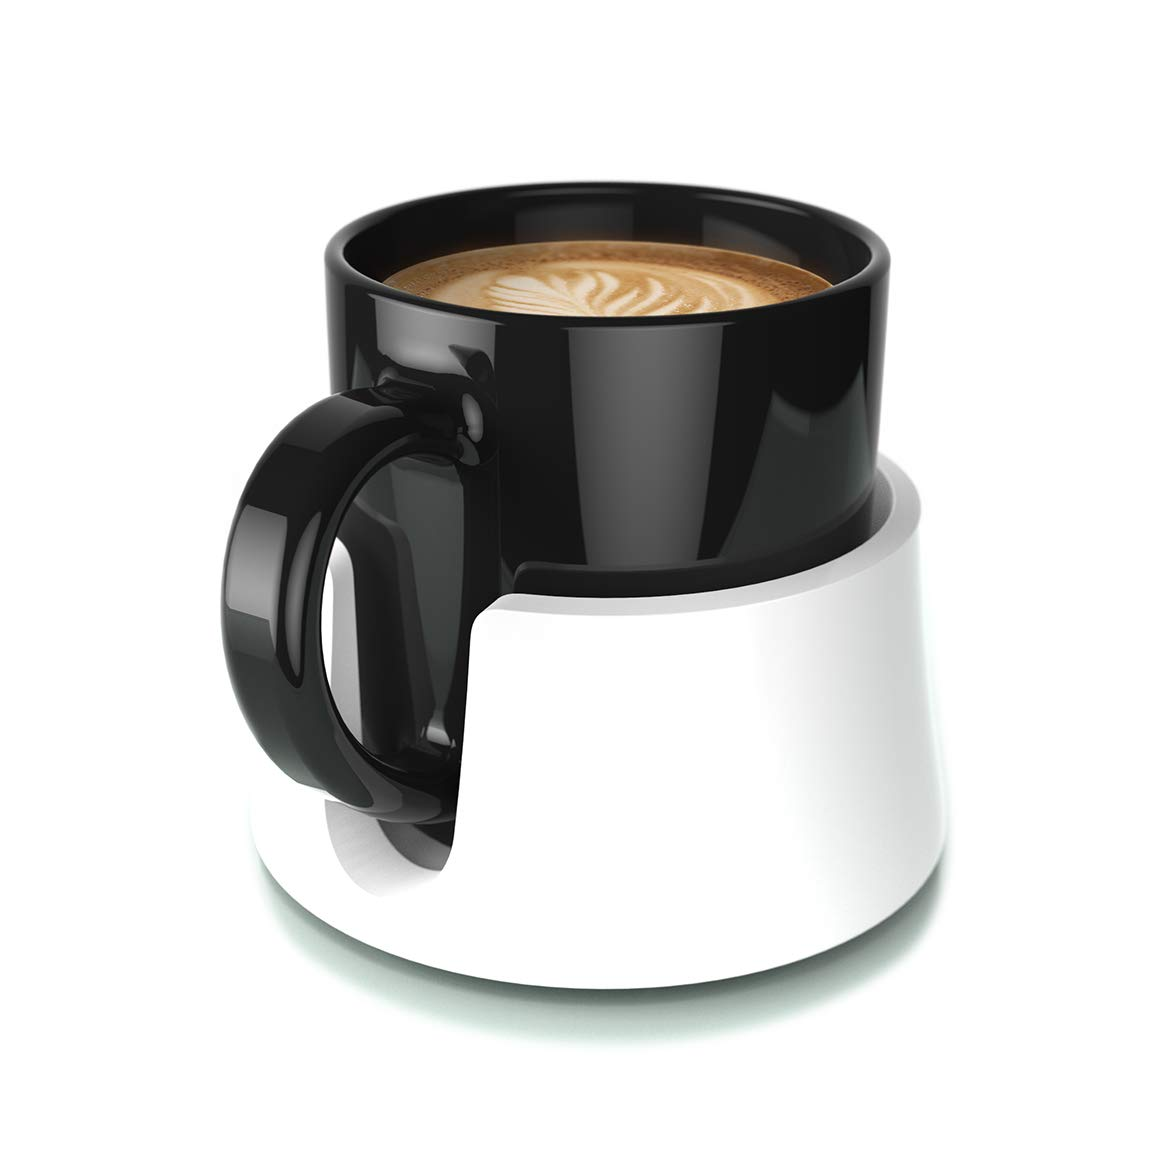 Jet Black The Ultimate Anti-Spill Cup Holder Drink Coaster for Your Table or Desk TableCoaster